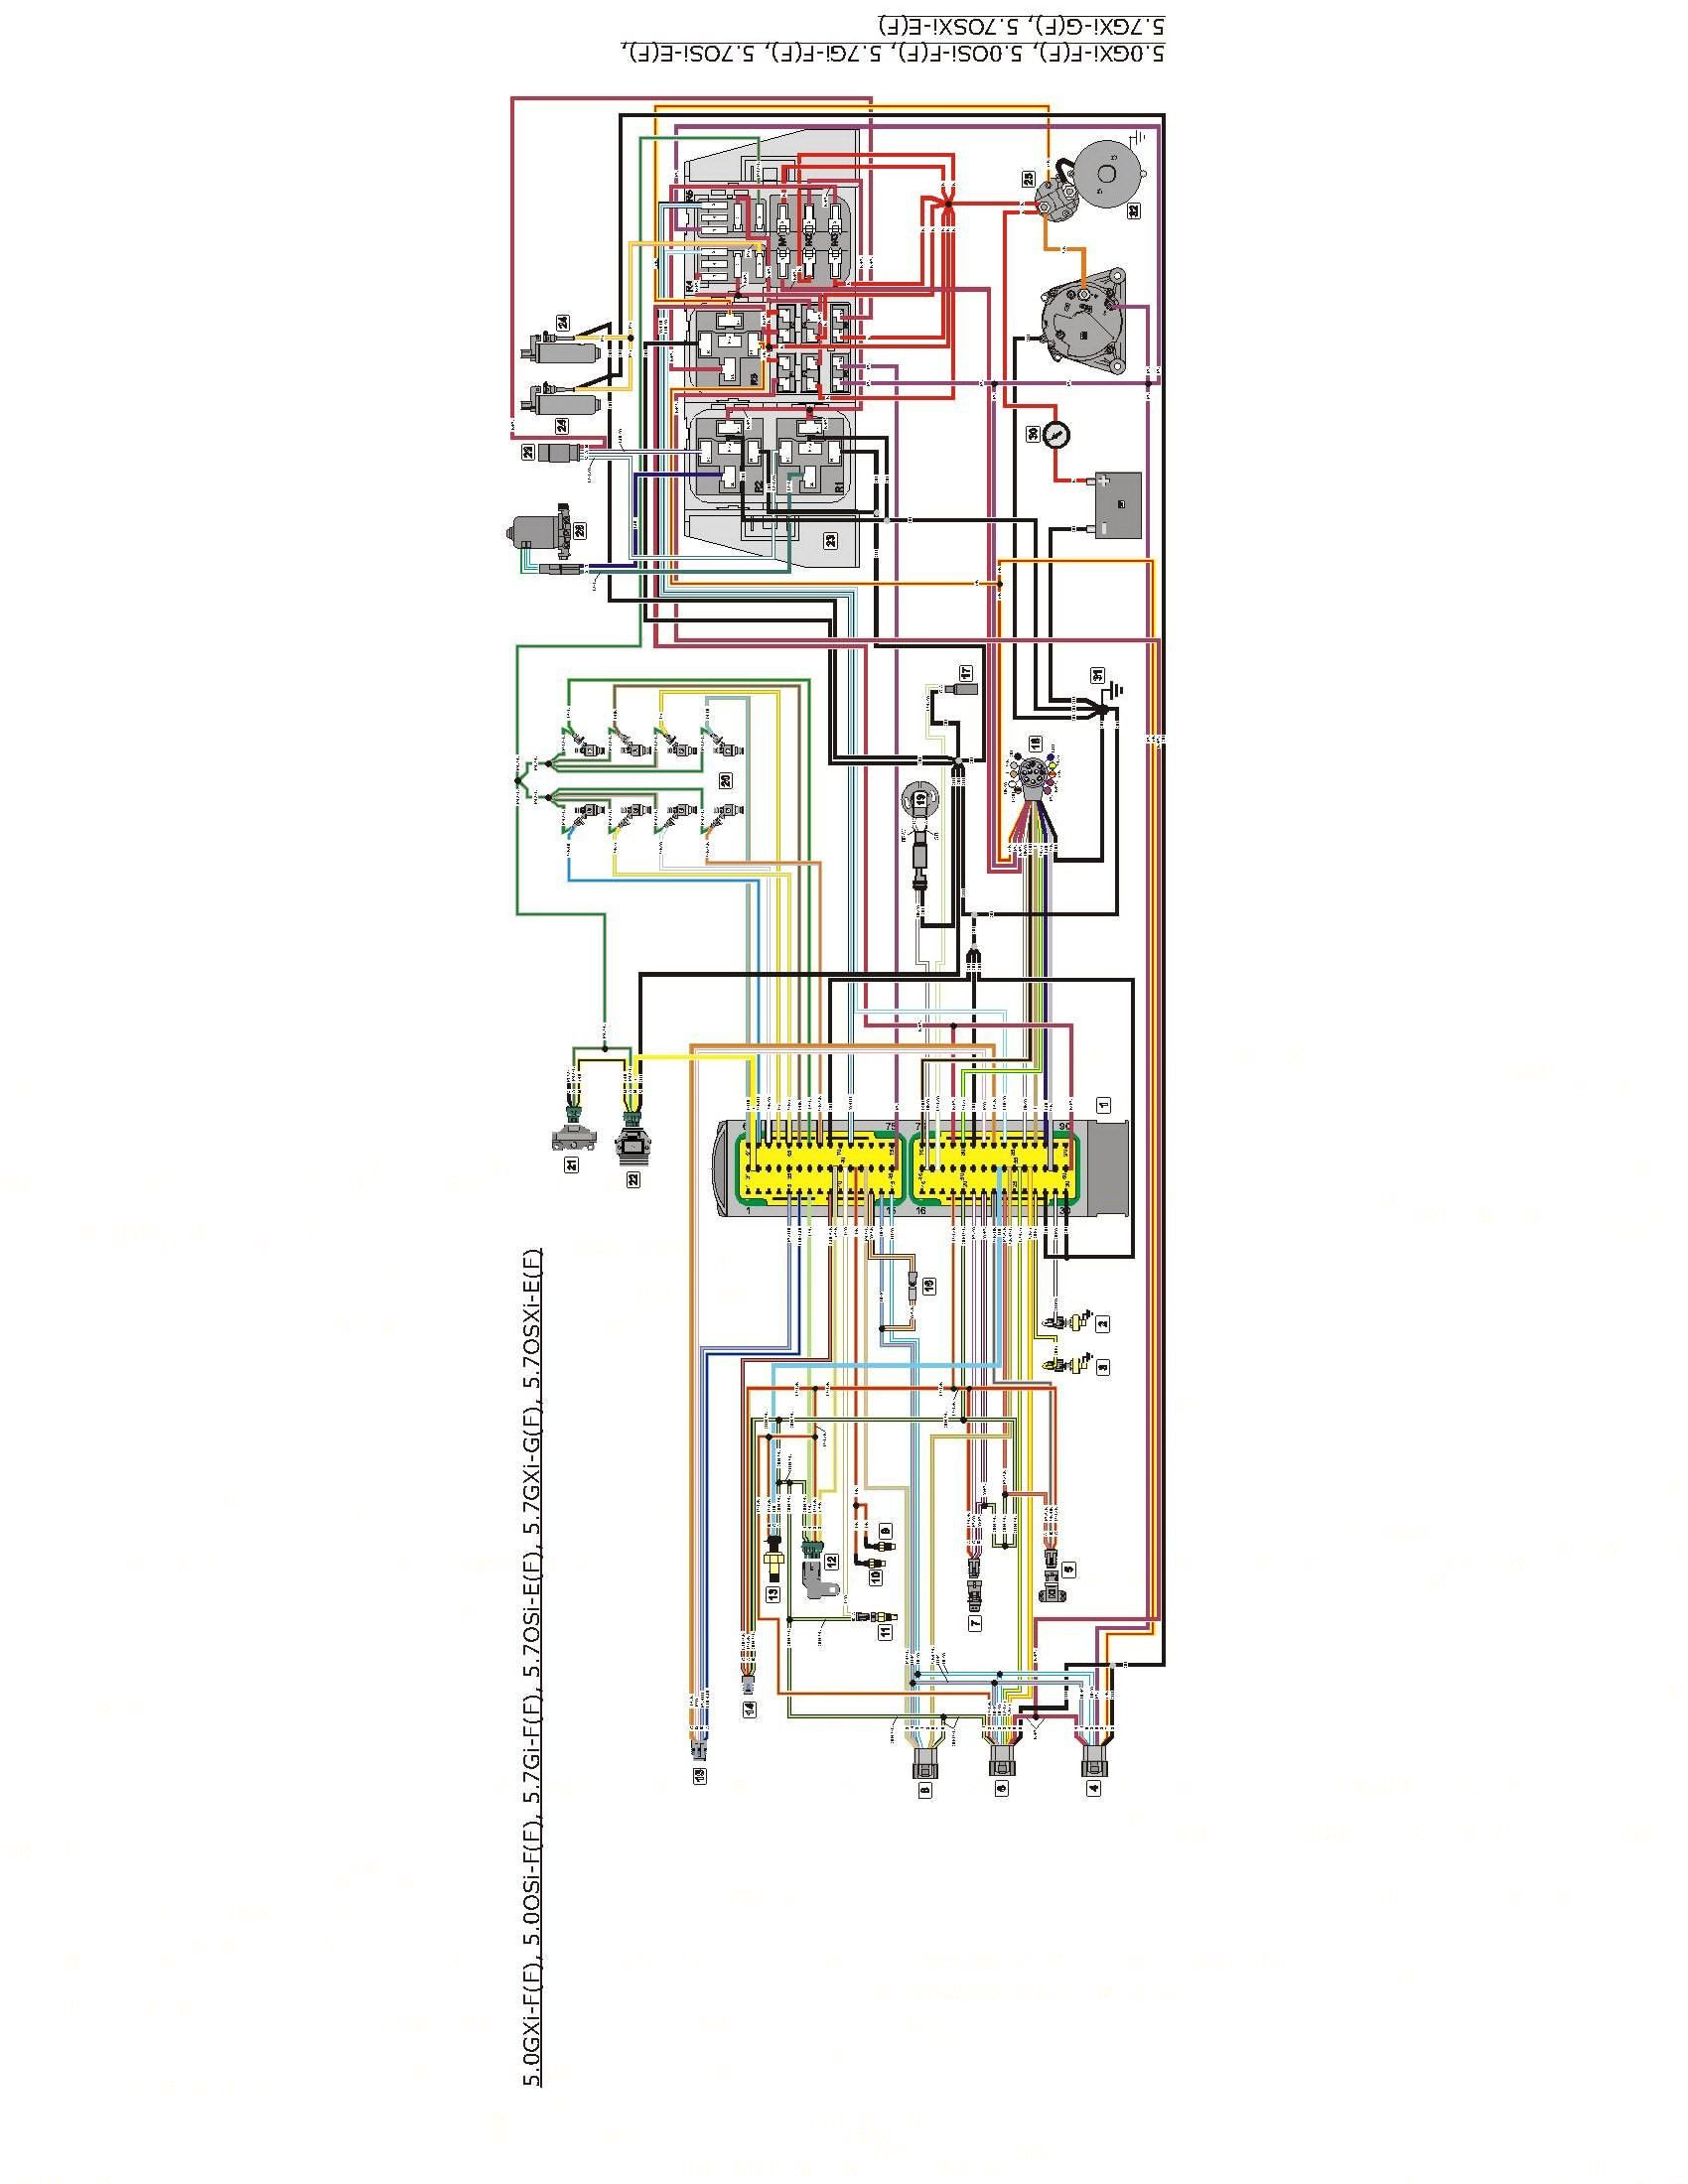 hight resolution of mercury outboard power trim wiring diagram lovely wiring diagram for volvo penta trim volvo penta trim motor volvo